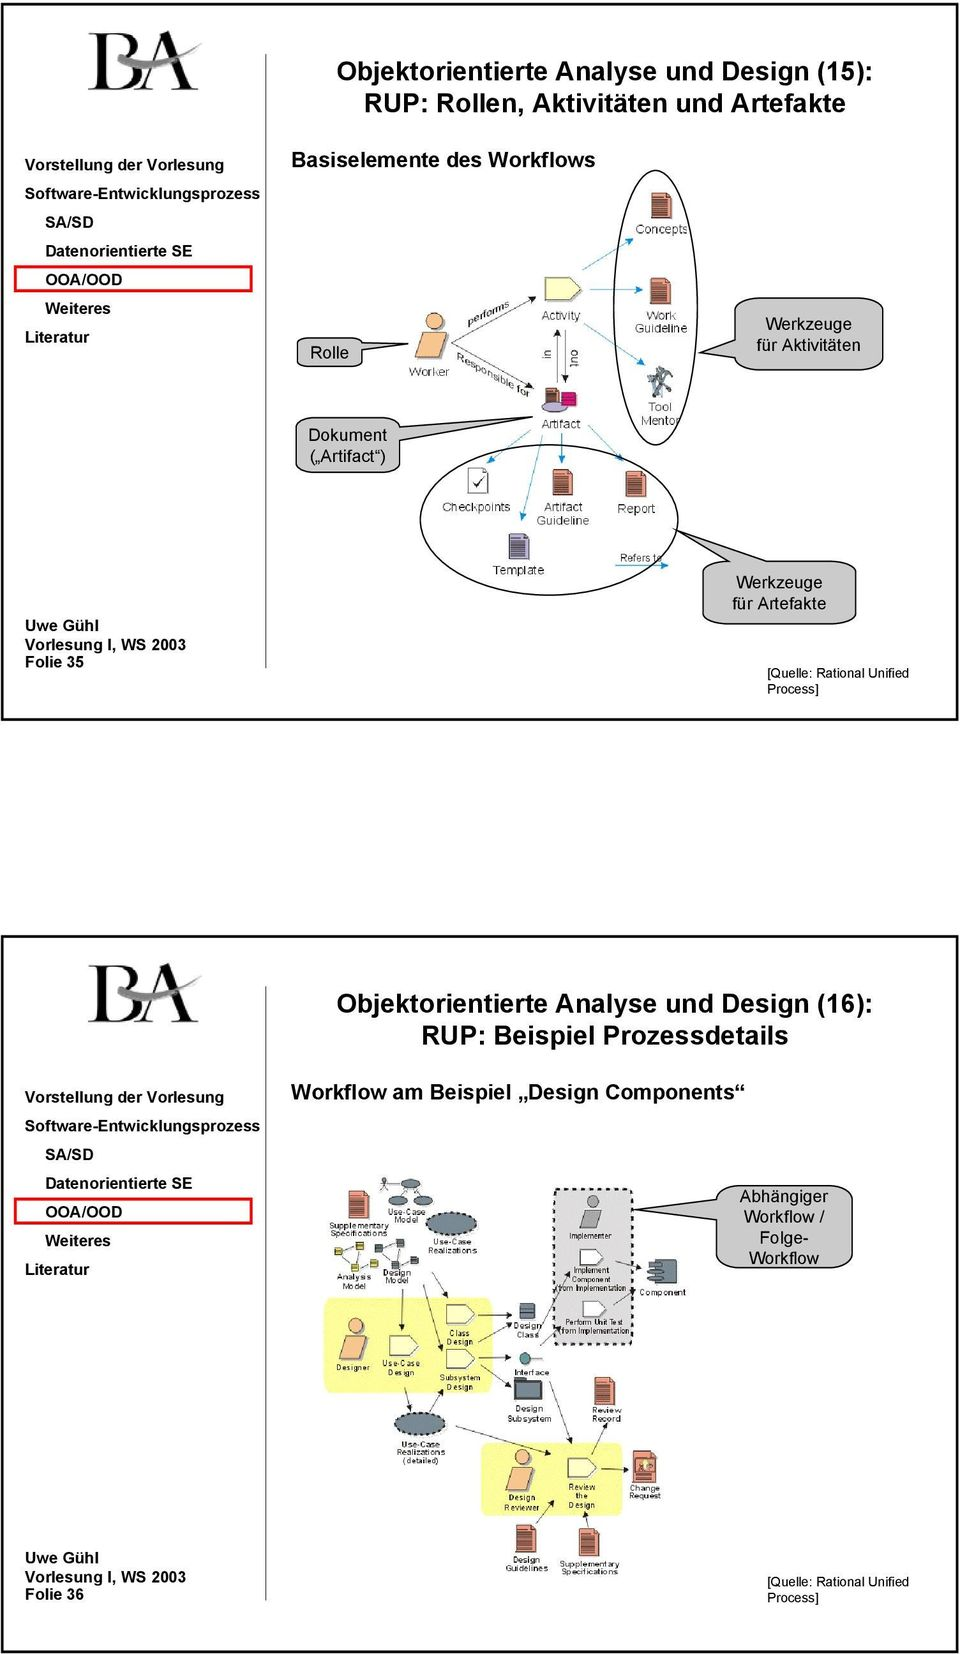 Rational Unified Process] Objektorientierte Analyse und Design (16): RUP: Beispiel Prozessdetails